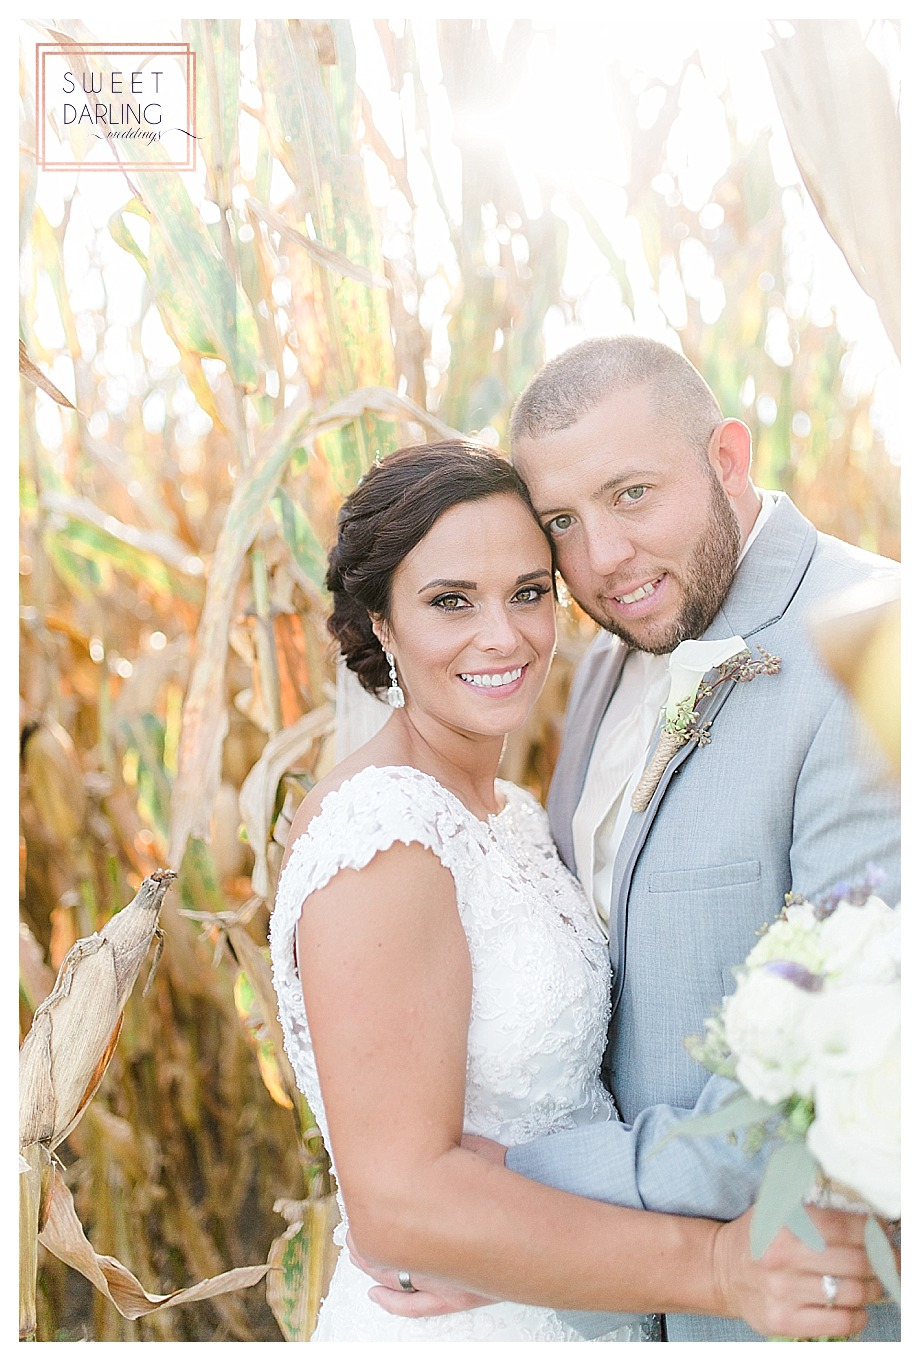 elegant-country-barn-wedding-hudson-farm-urbana-illinois-sweet-darling-weddings-photography_0691